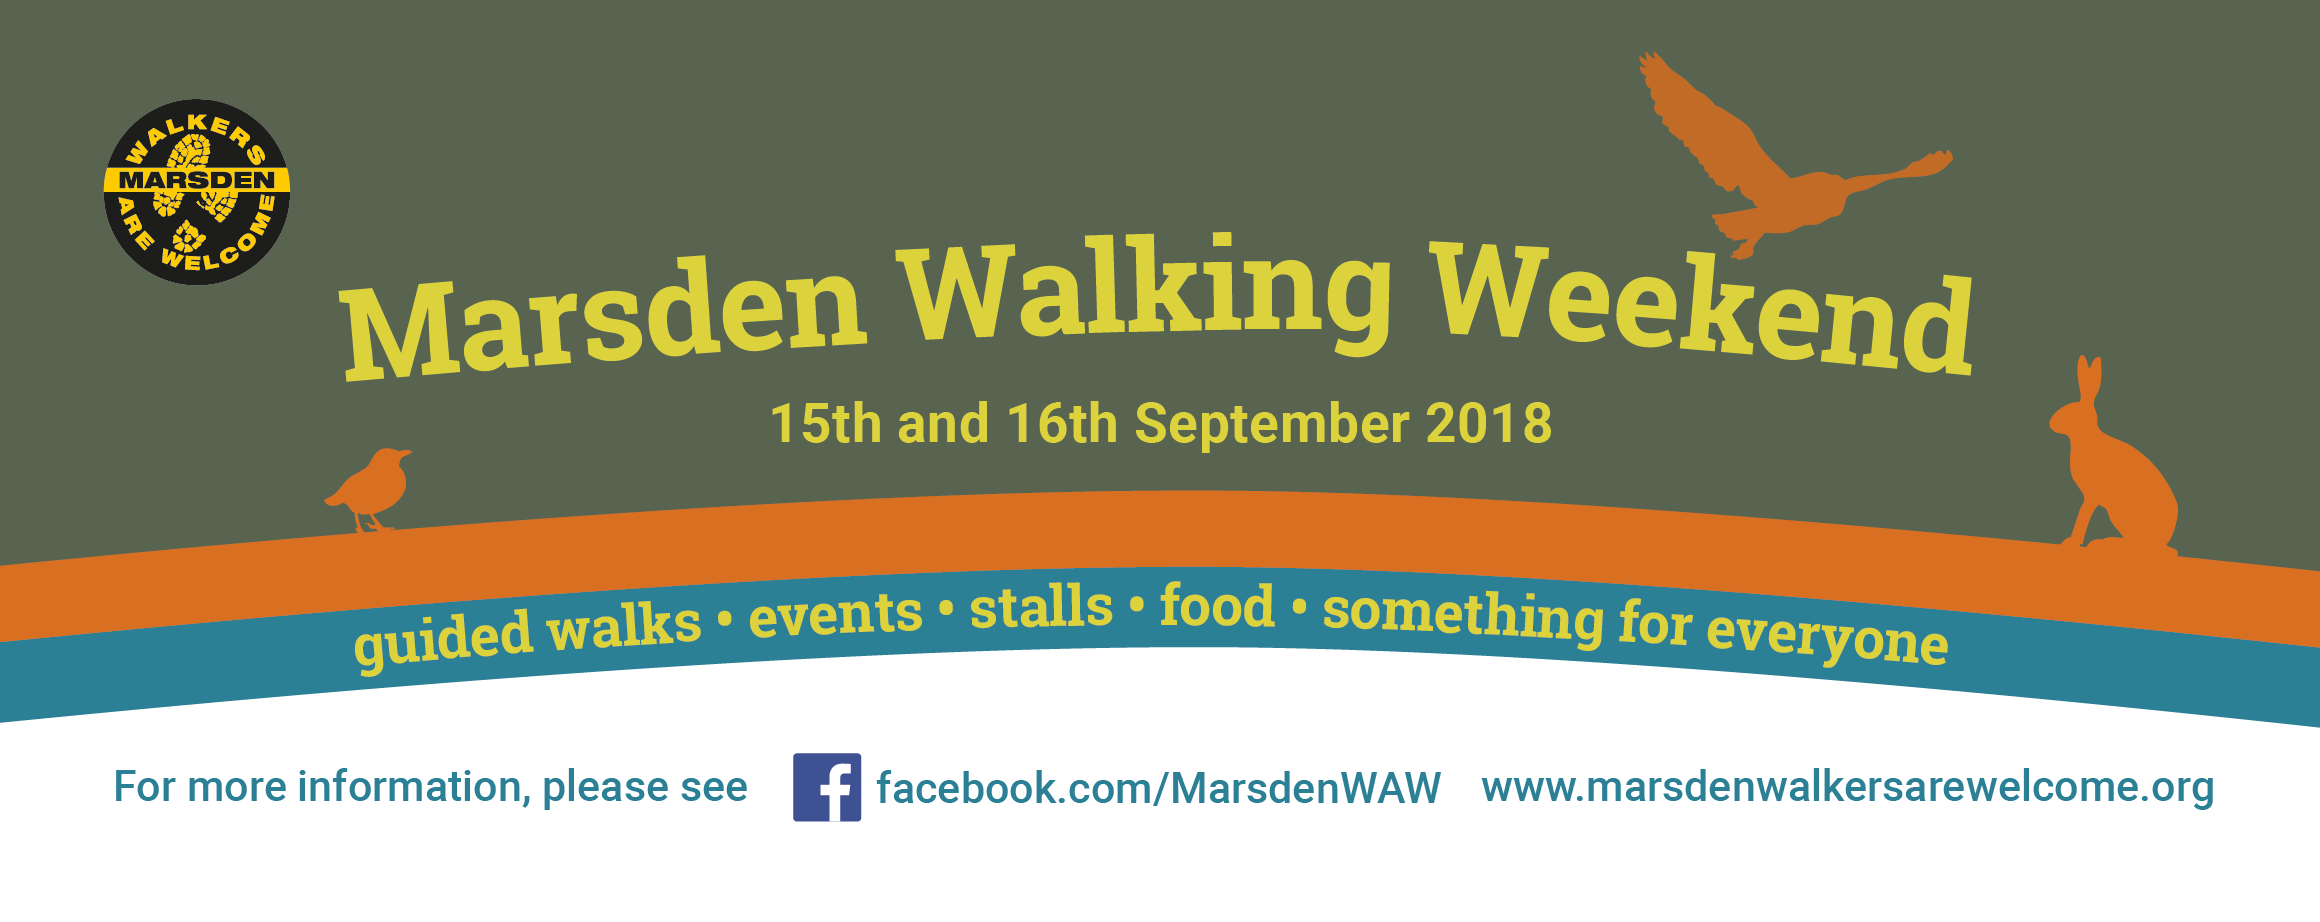 Marsden Walking Weekend 2018 banner